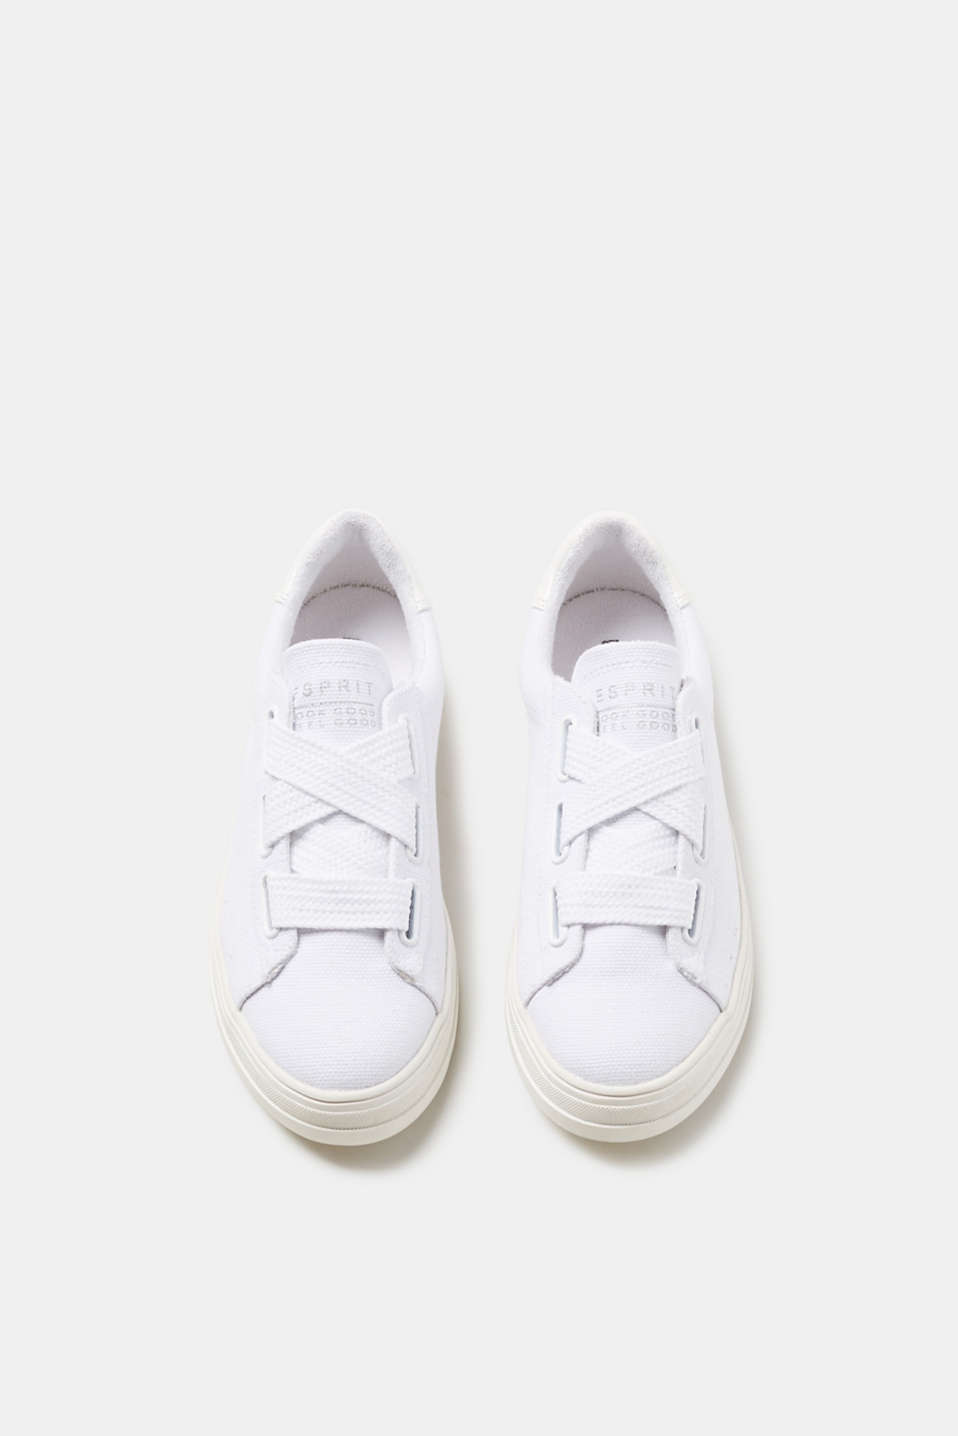 Trendy trainers + tonal woven tape